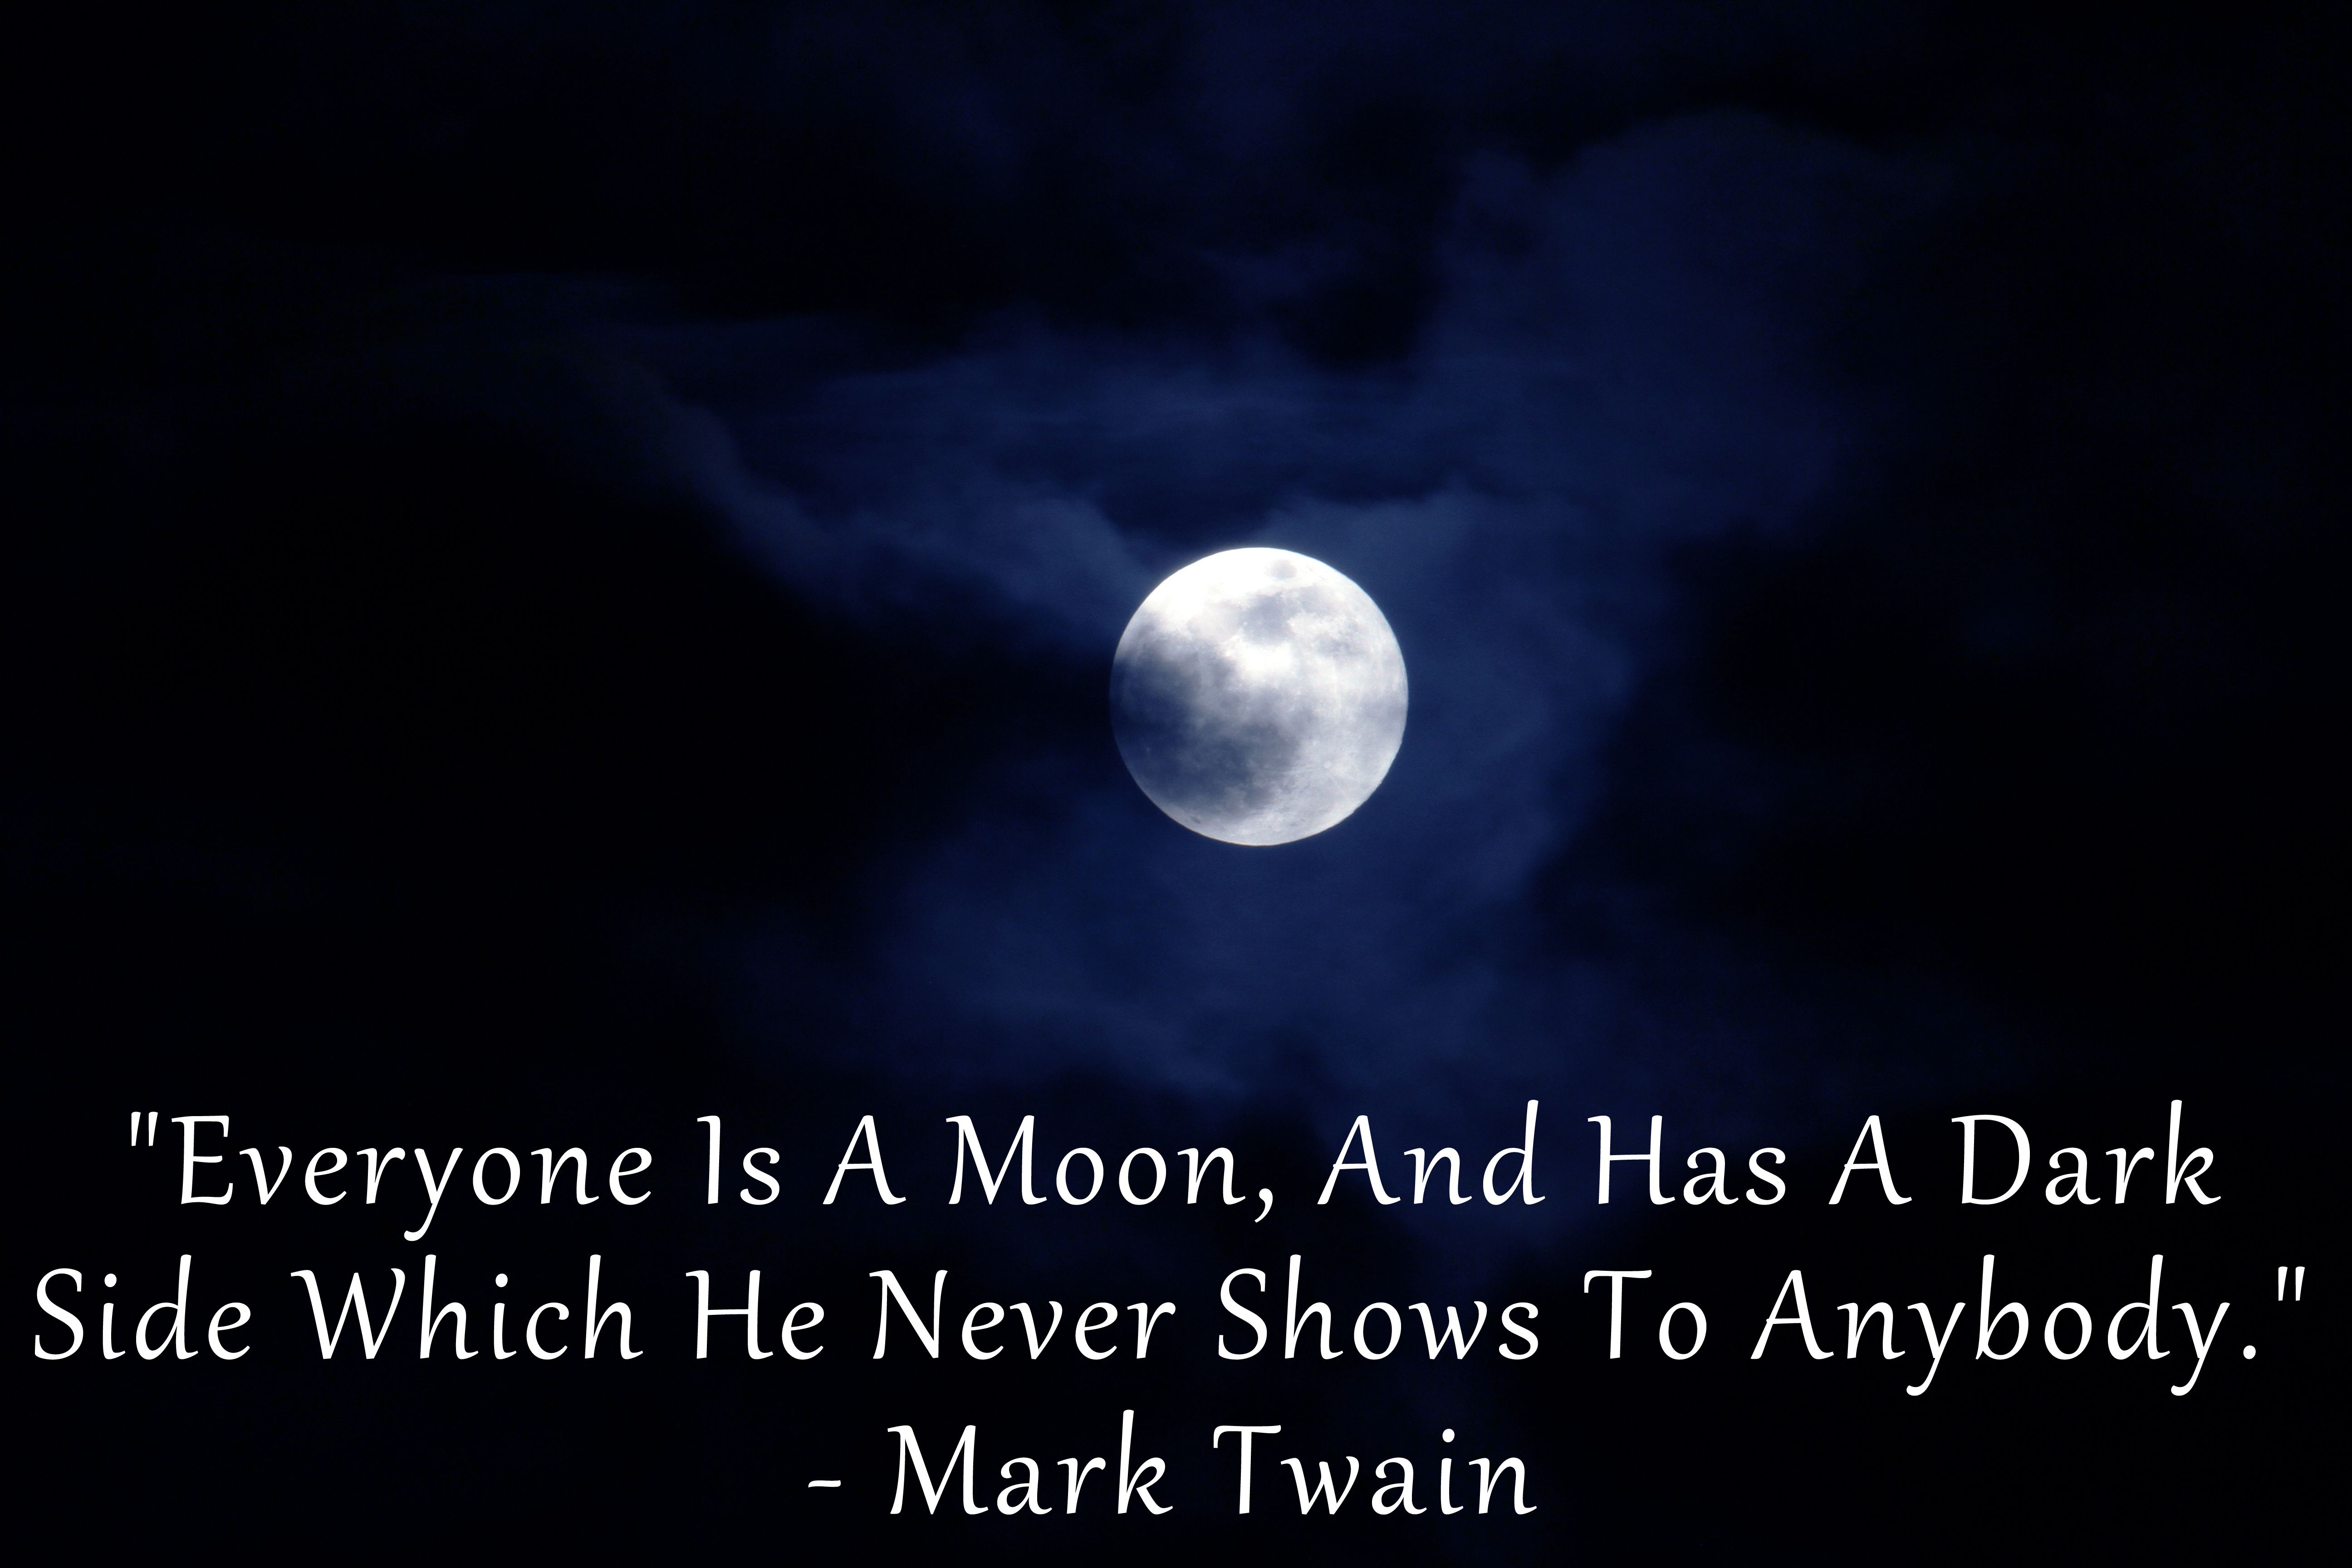 Everyone Is A Moon And Has A Dark Side Which He Never Shows To Anybody Mark Twain Pinned By Www Computerfixx Biz Inspirational Quotes Dark Side Moon